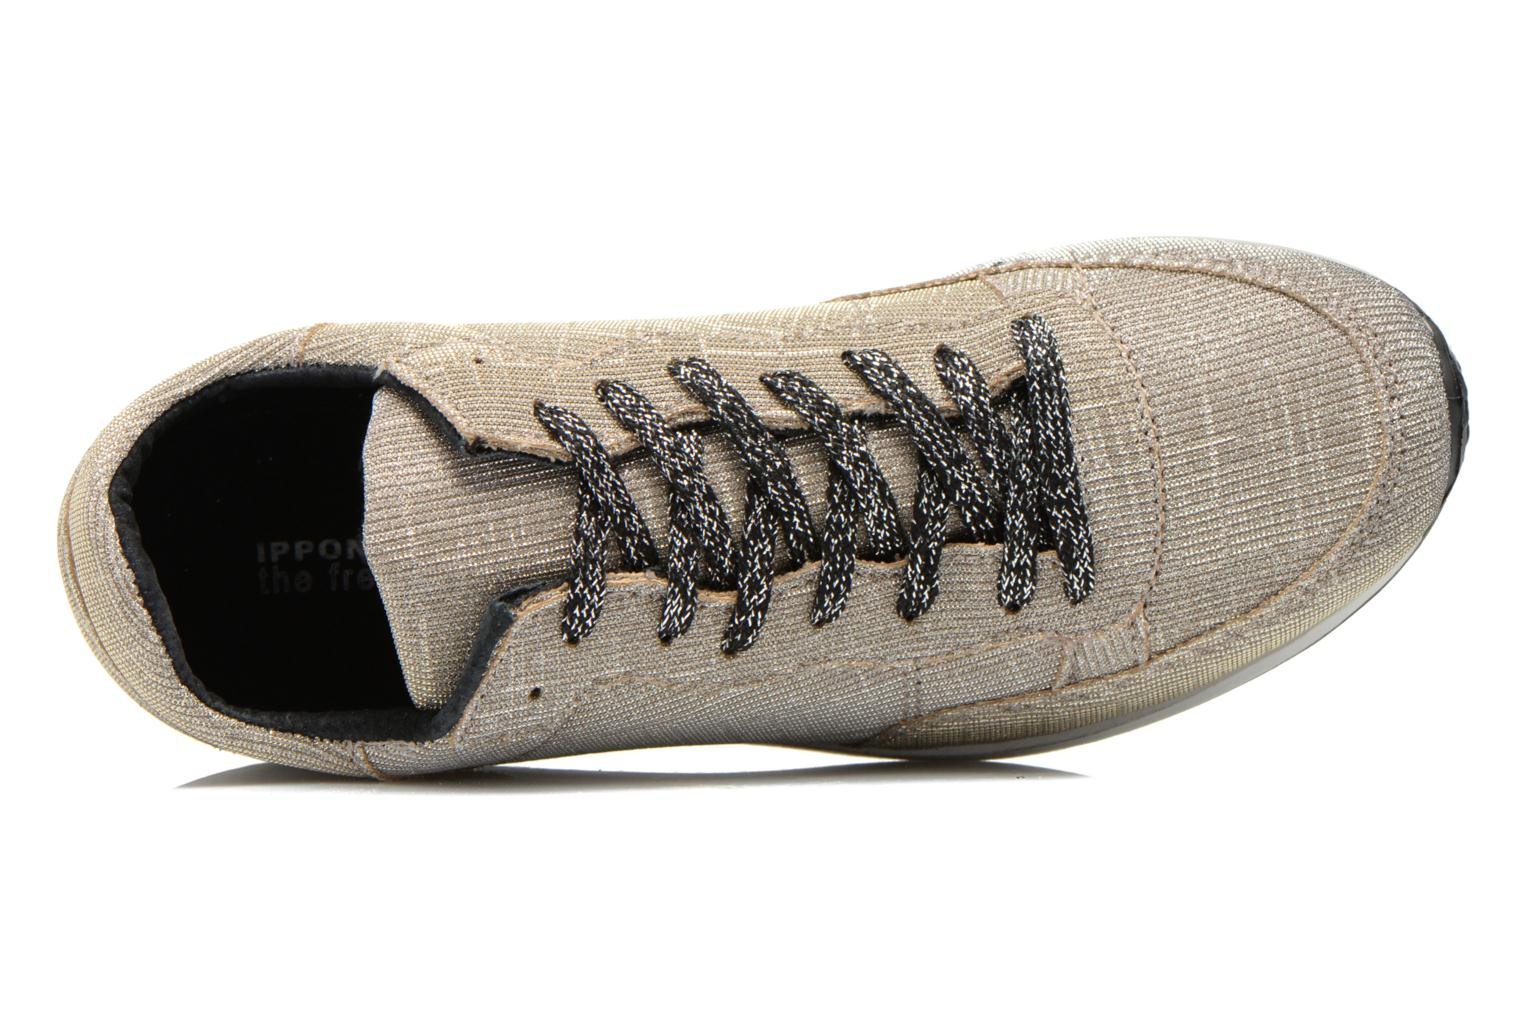 Trainers Ippon Vintage Run silver Grey view from the left